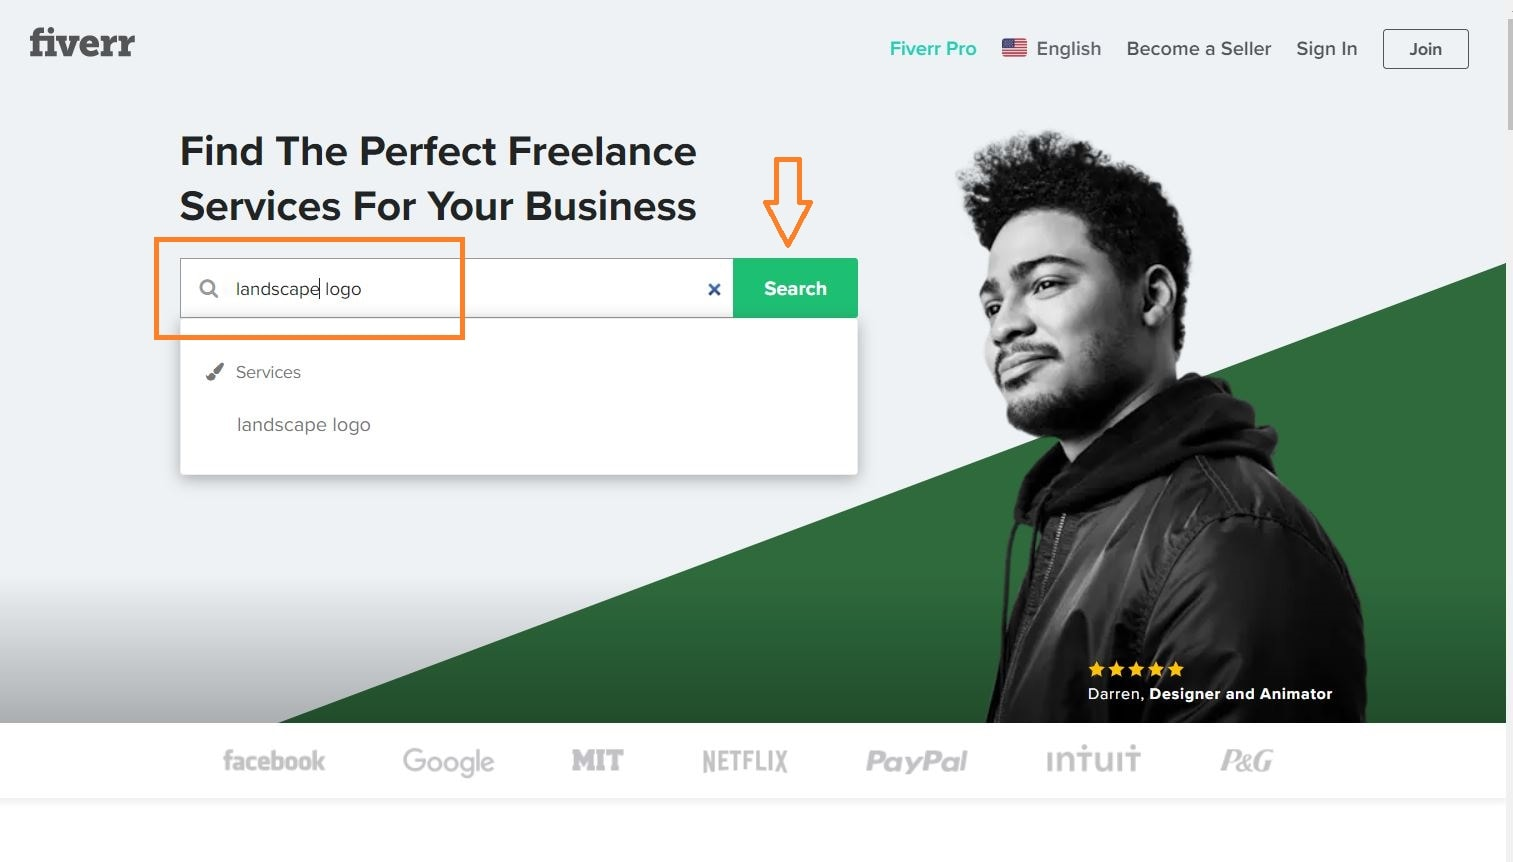 Fiverr screenshot - homepage search